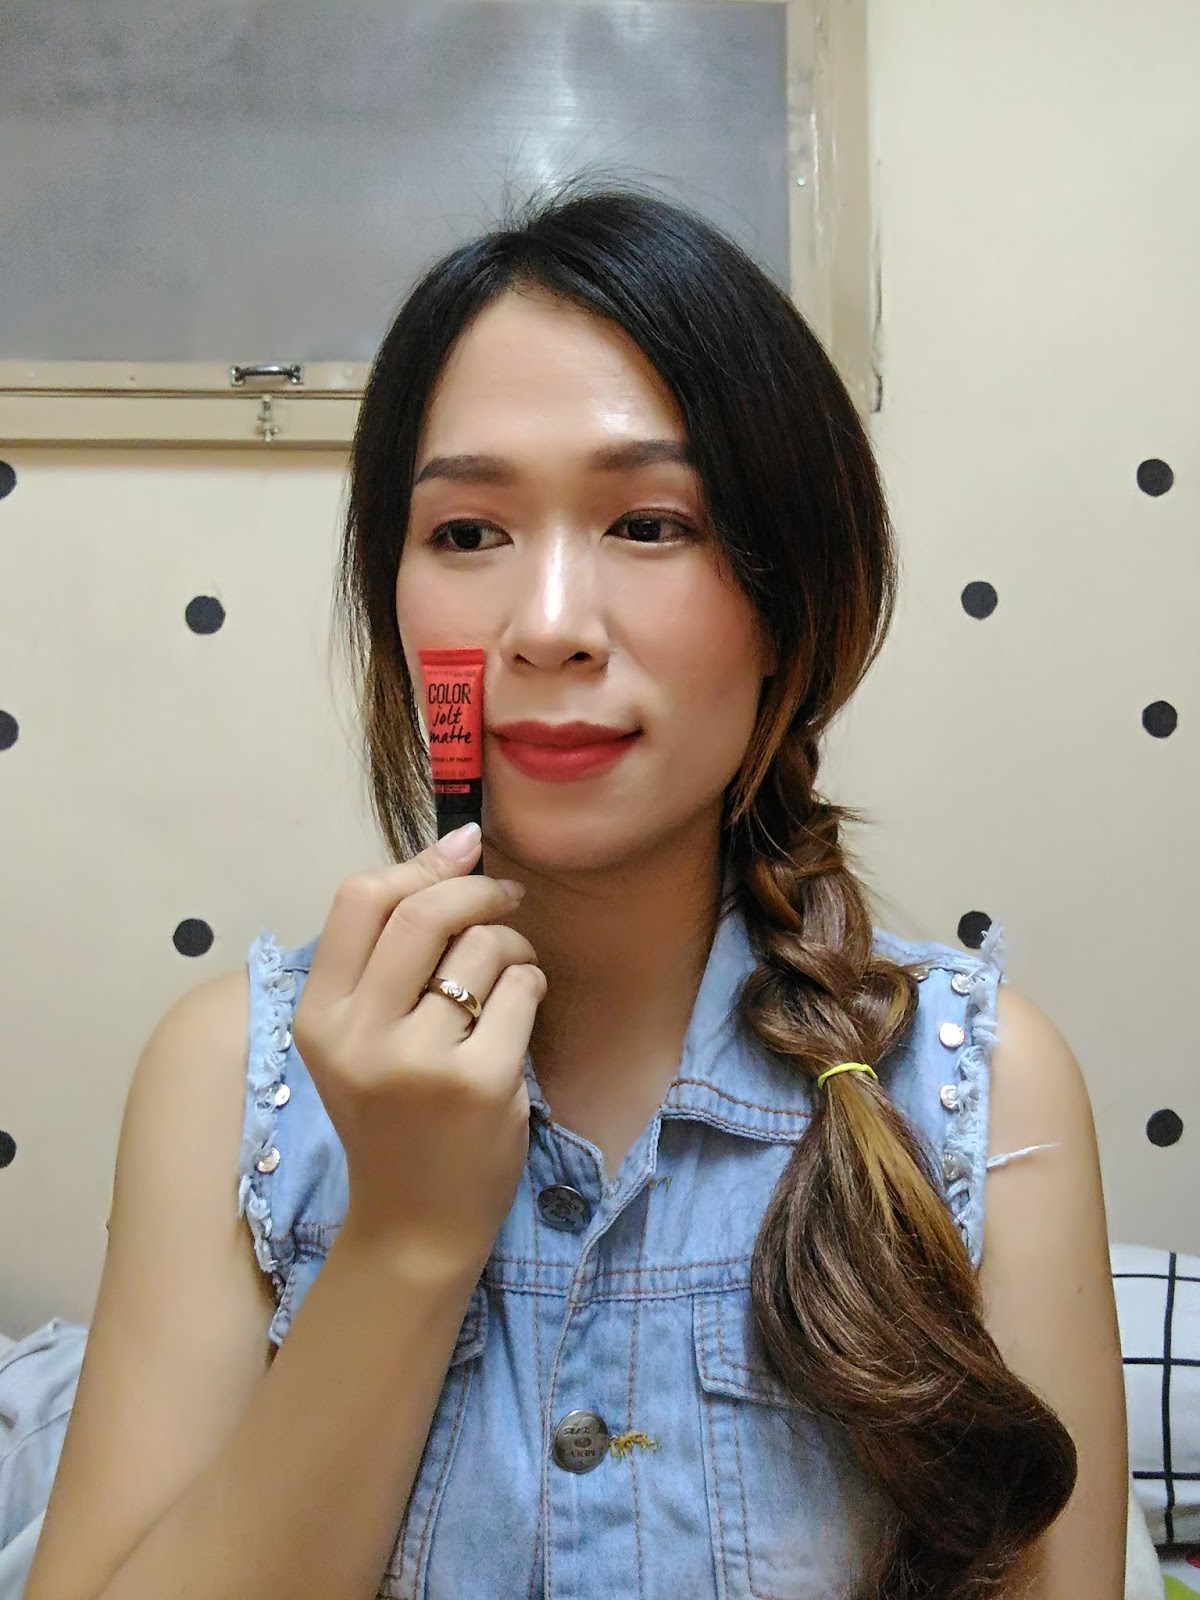 02 - Maybelline Color Jolt Matte Intense Lip Paints - Bittersweet Mandarin